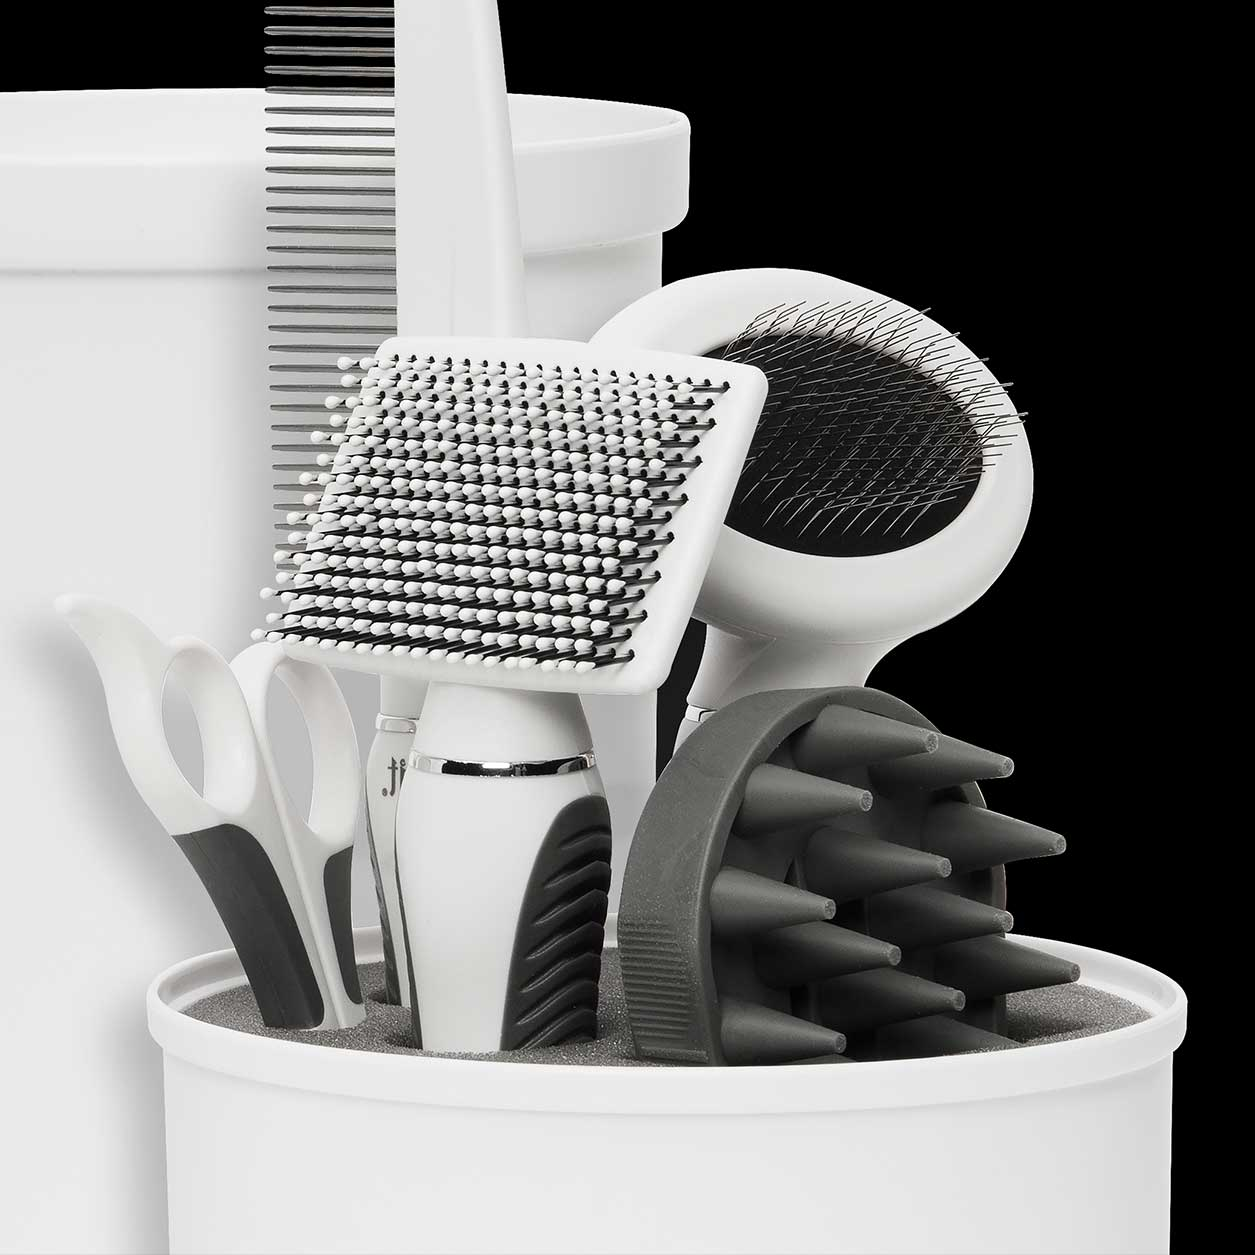 Shorthair Grooming Kit tools standing upright in container